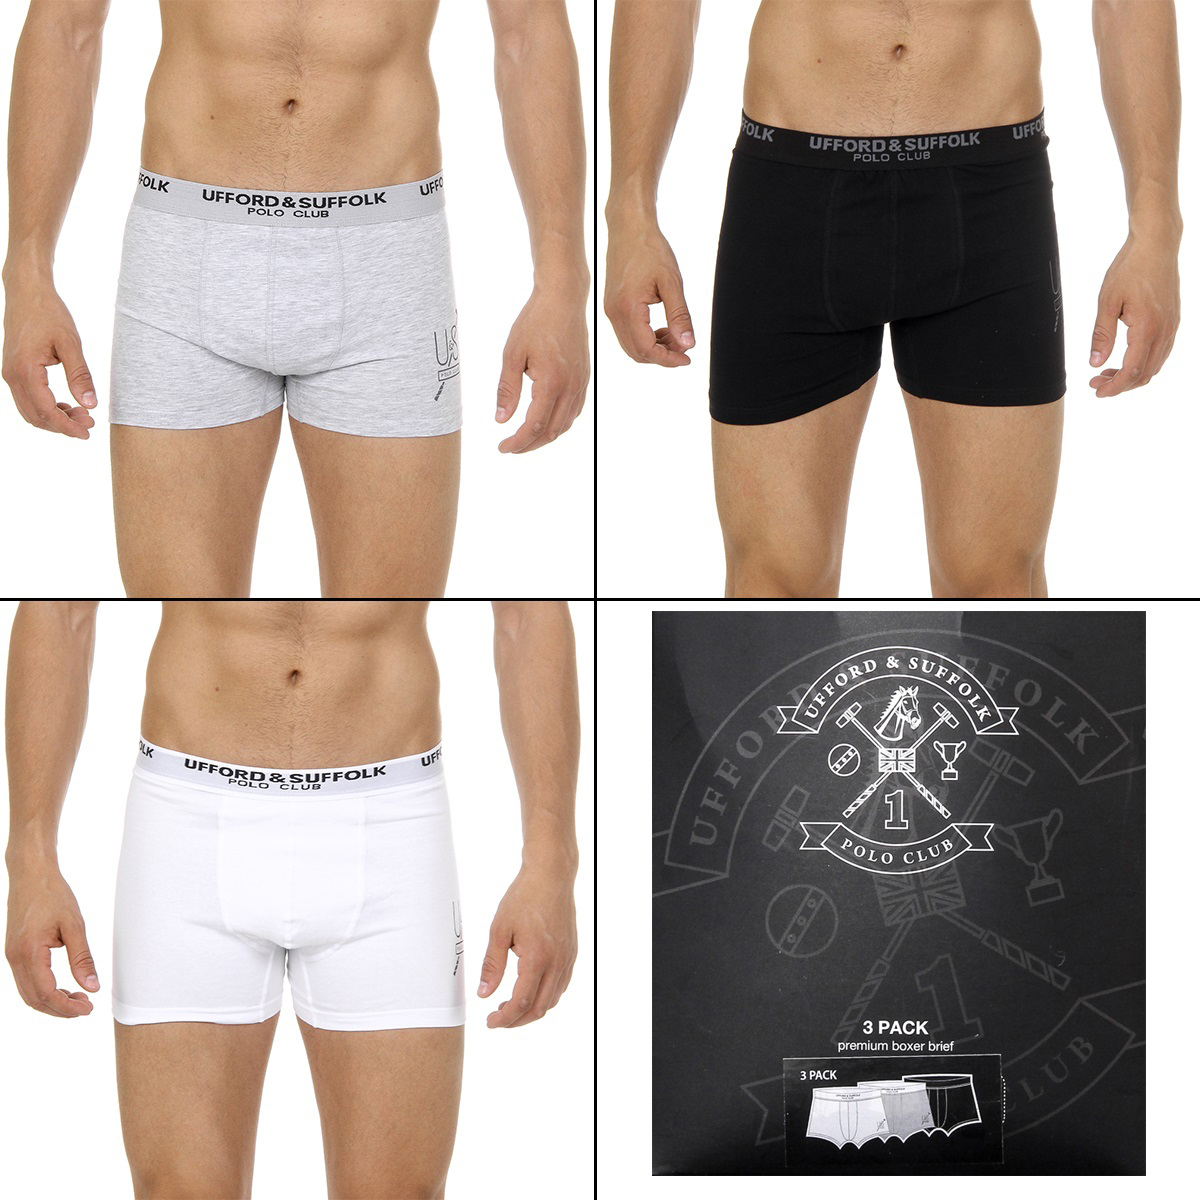 Primary image for Ufford & Suffolk Polo Club Mens Three pack boxer trunk US300